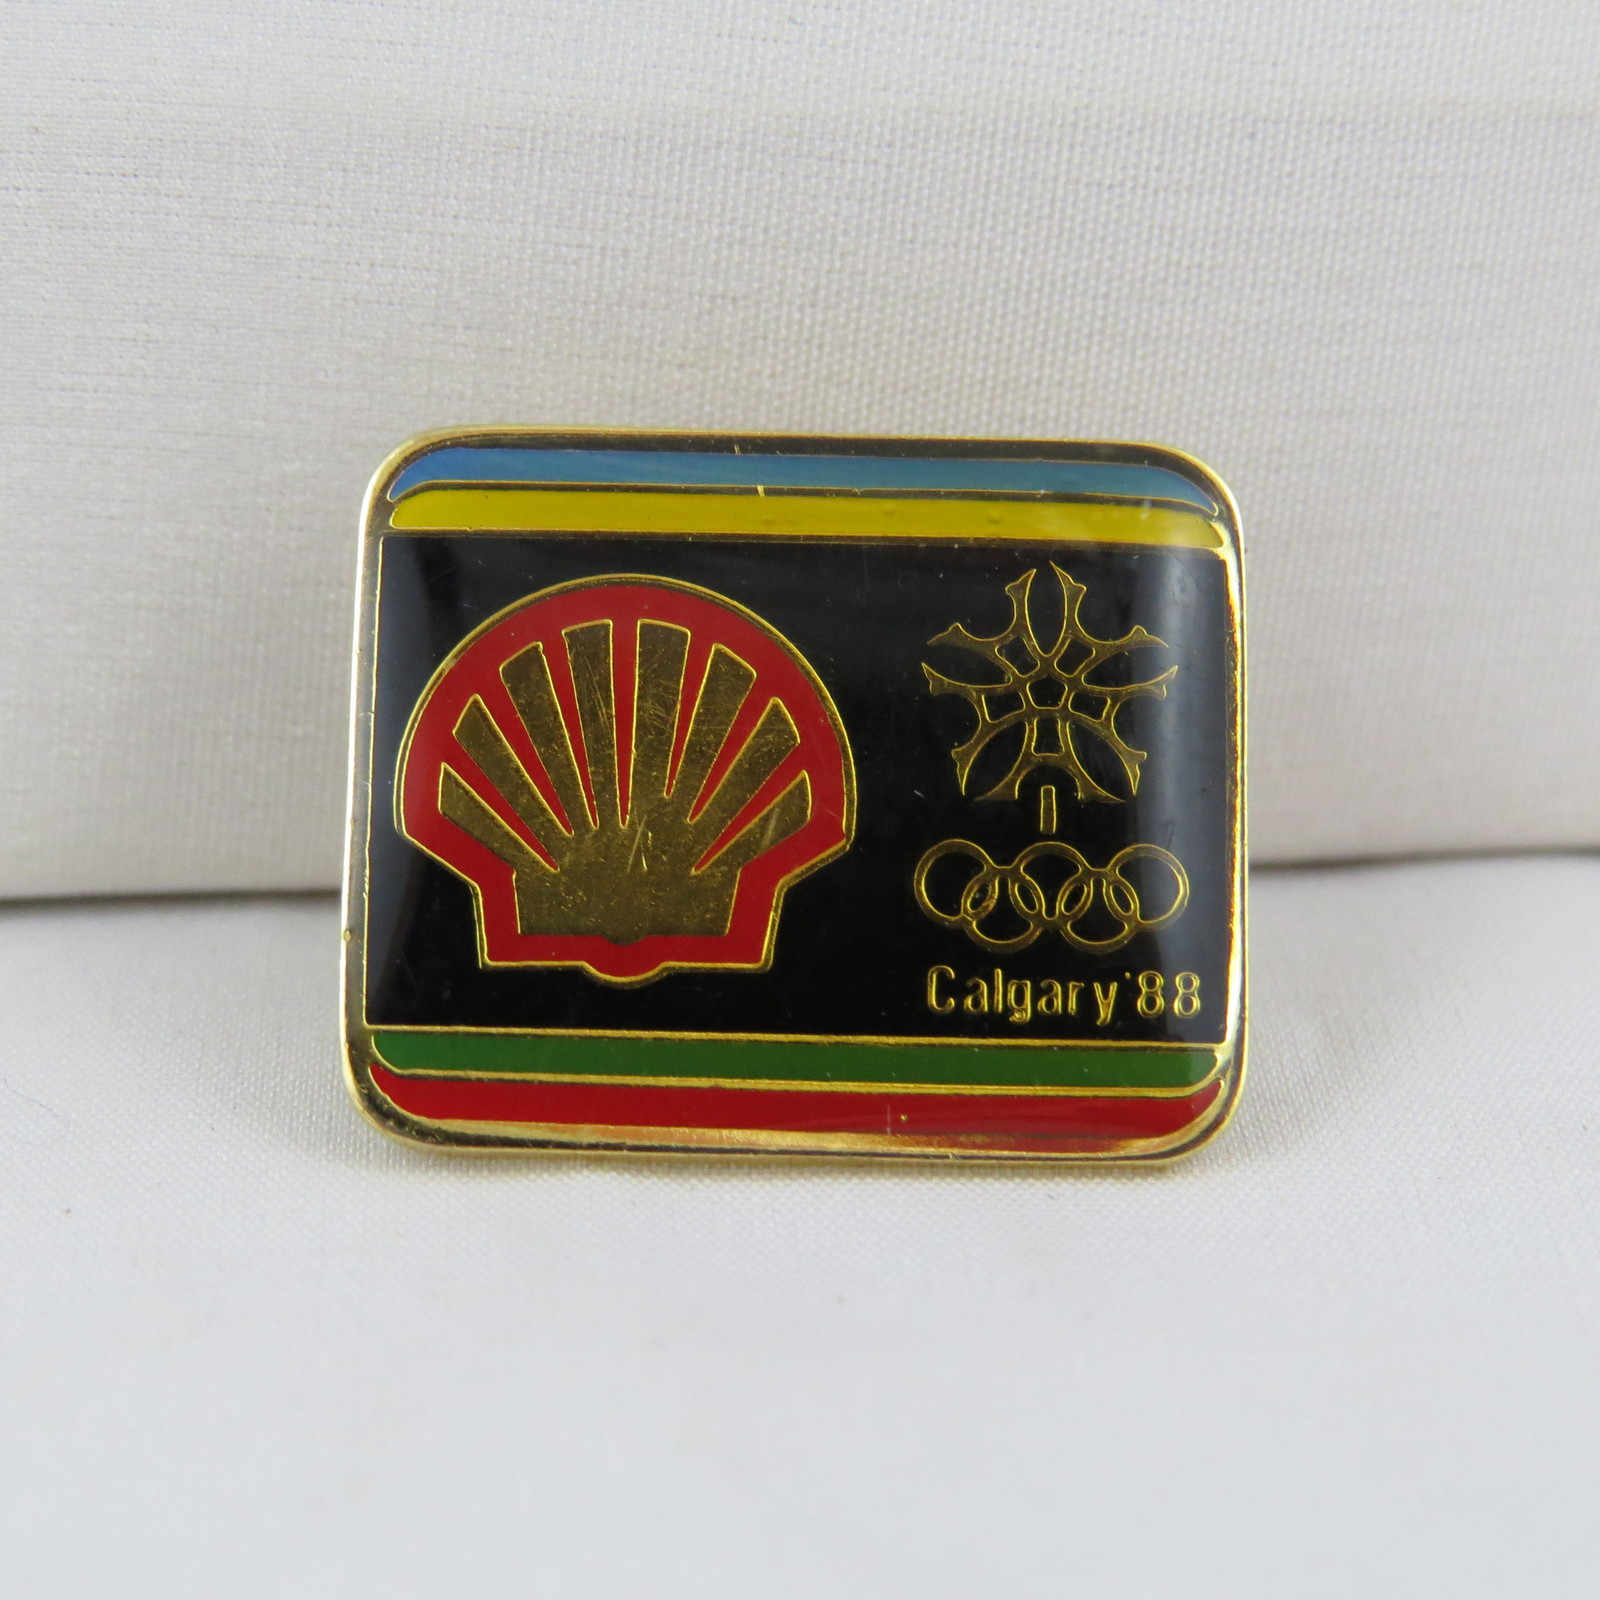 Primary image for 1988 Olympic Winter Games  Pin - Shell (Gas) Sponsor Pin - Hard to Find